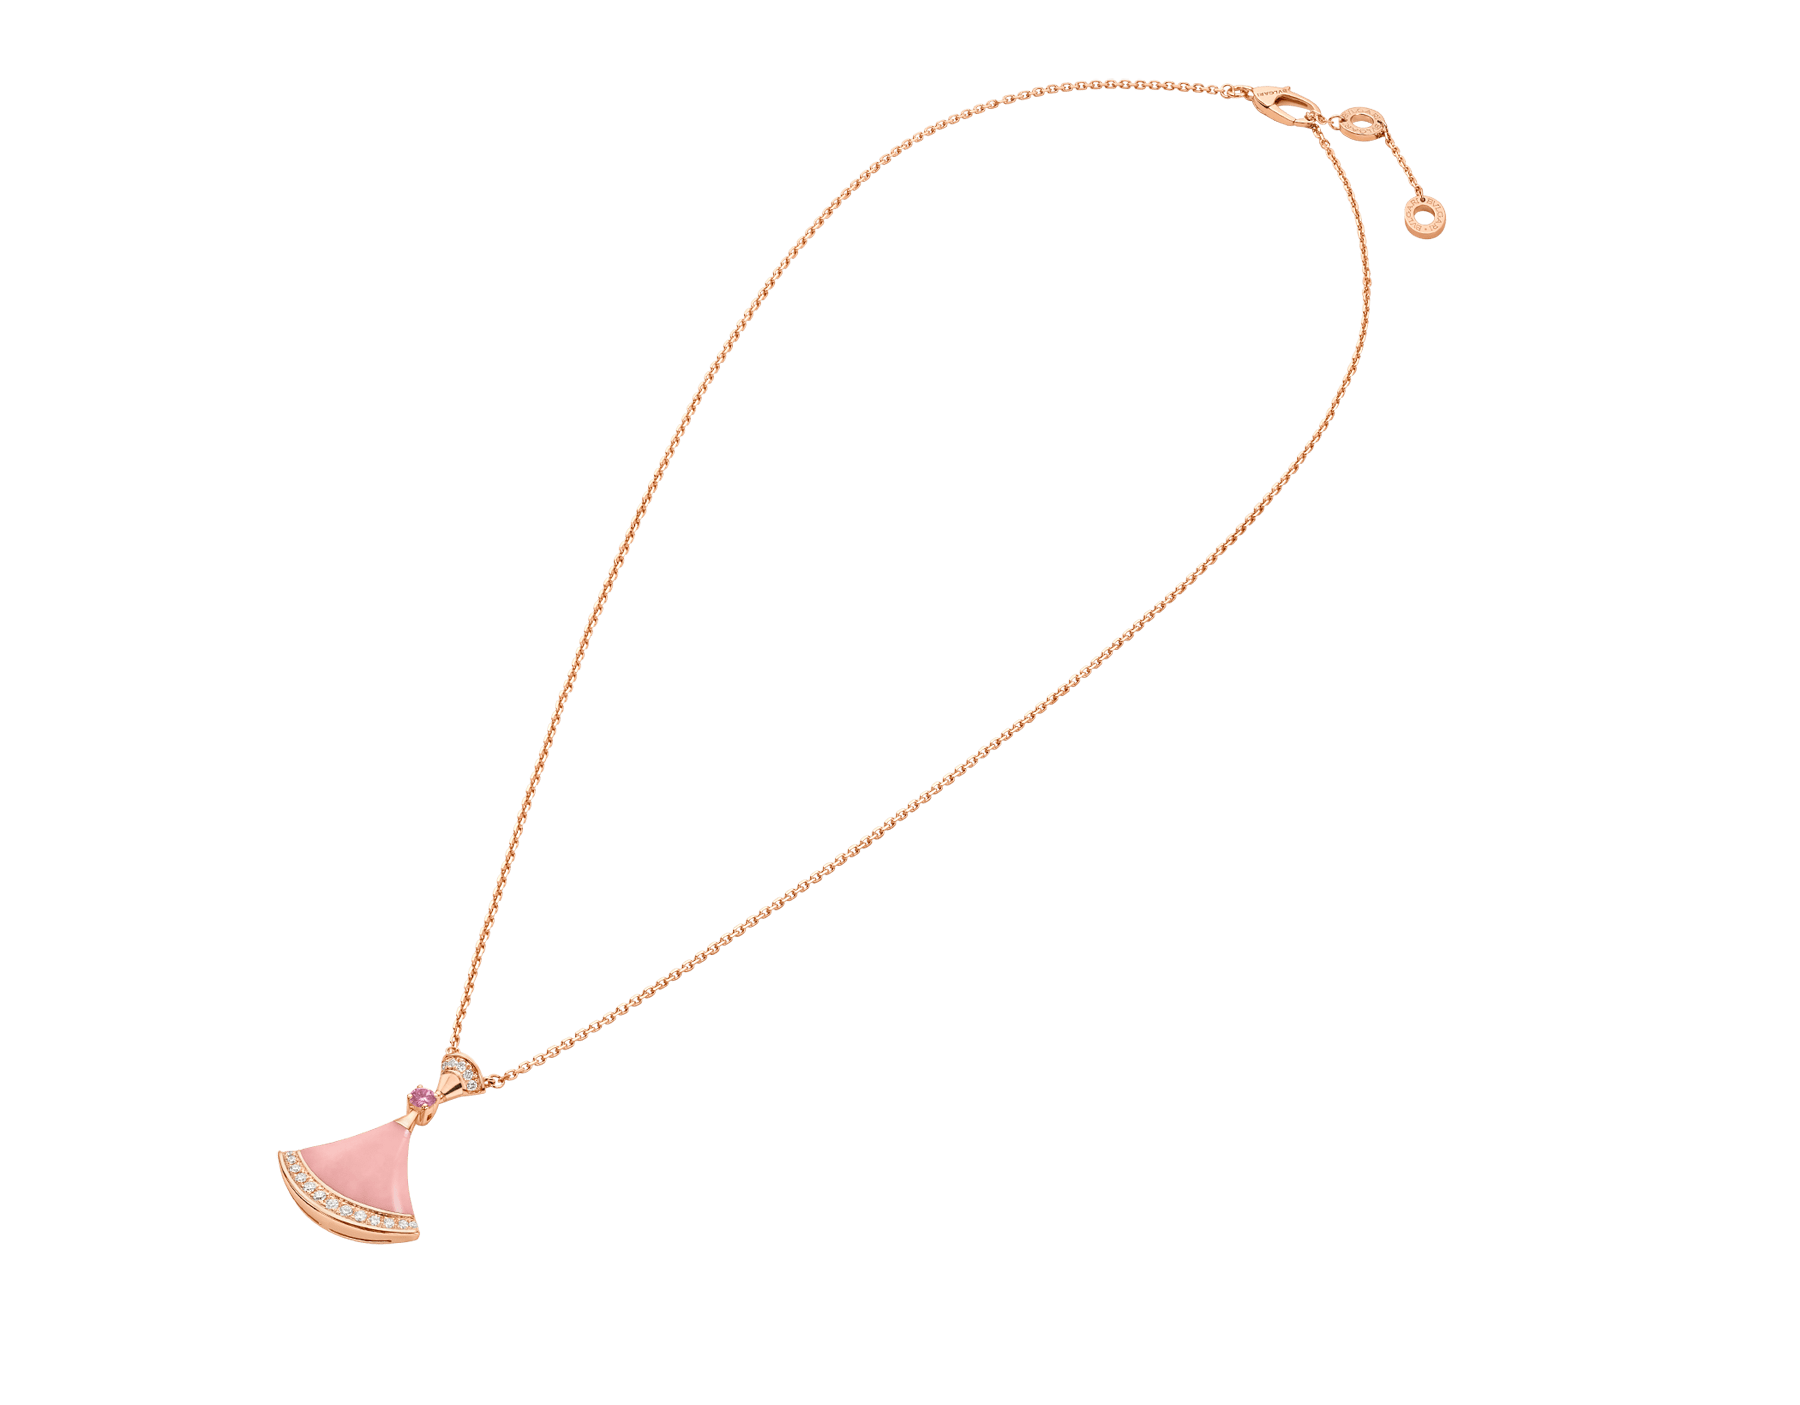 DIVAS' DREAM 18 kt rose gold pendant necklace set with a pink opal insert, a pink sapphire and pavé diamonds. Chinese Valentine's Day Special Edition 358131 image 2